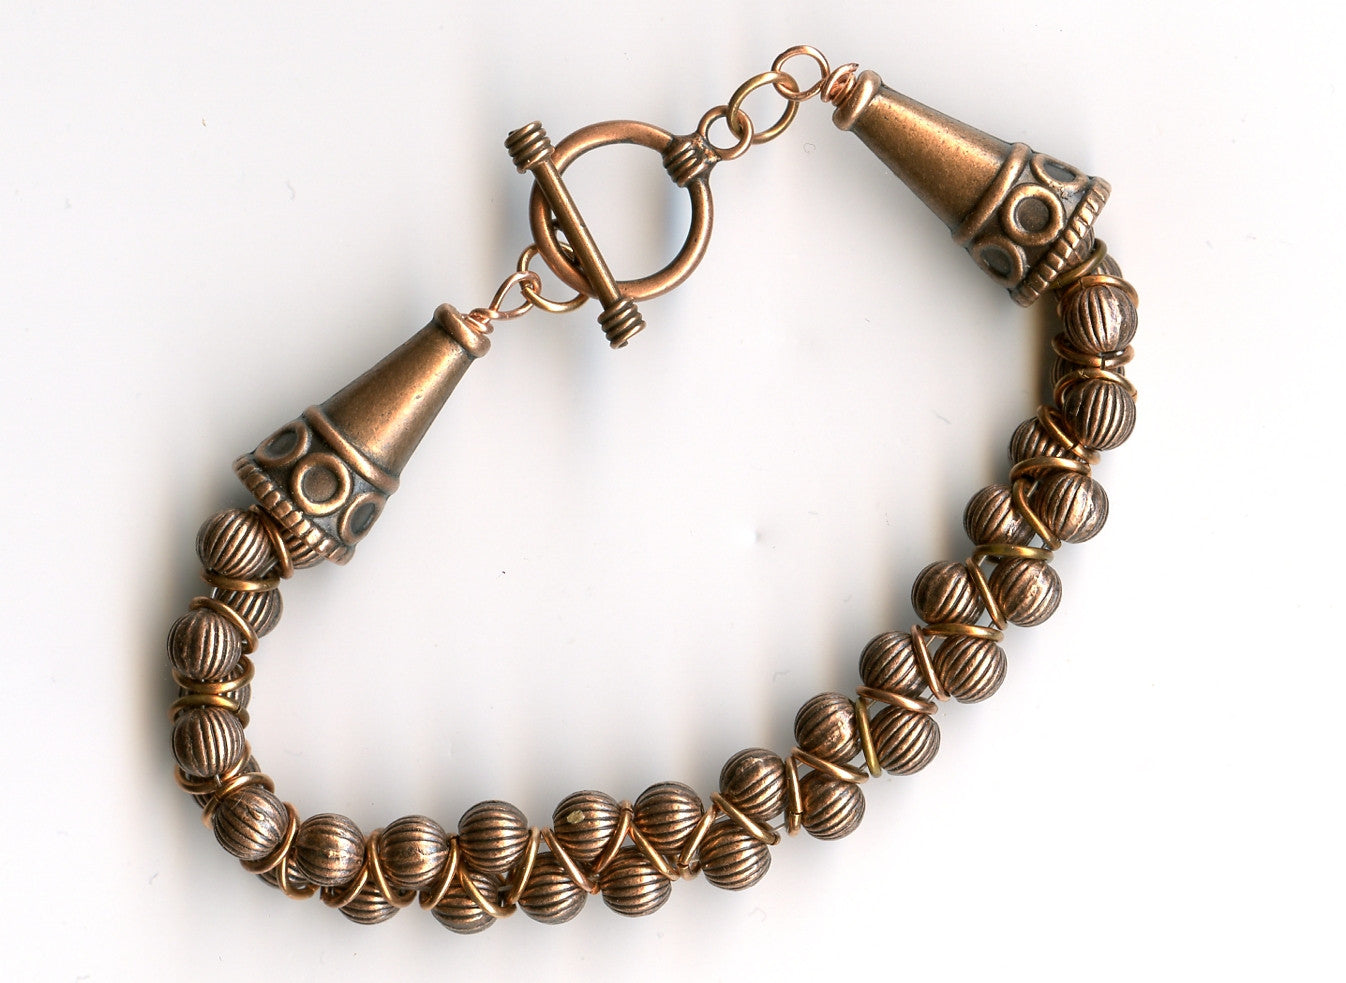 Antiqued Copper beads and cones, copper toggle clasp